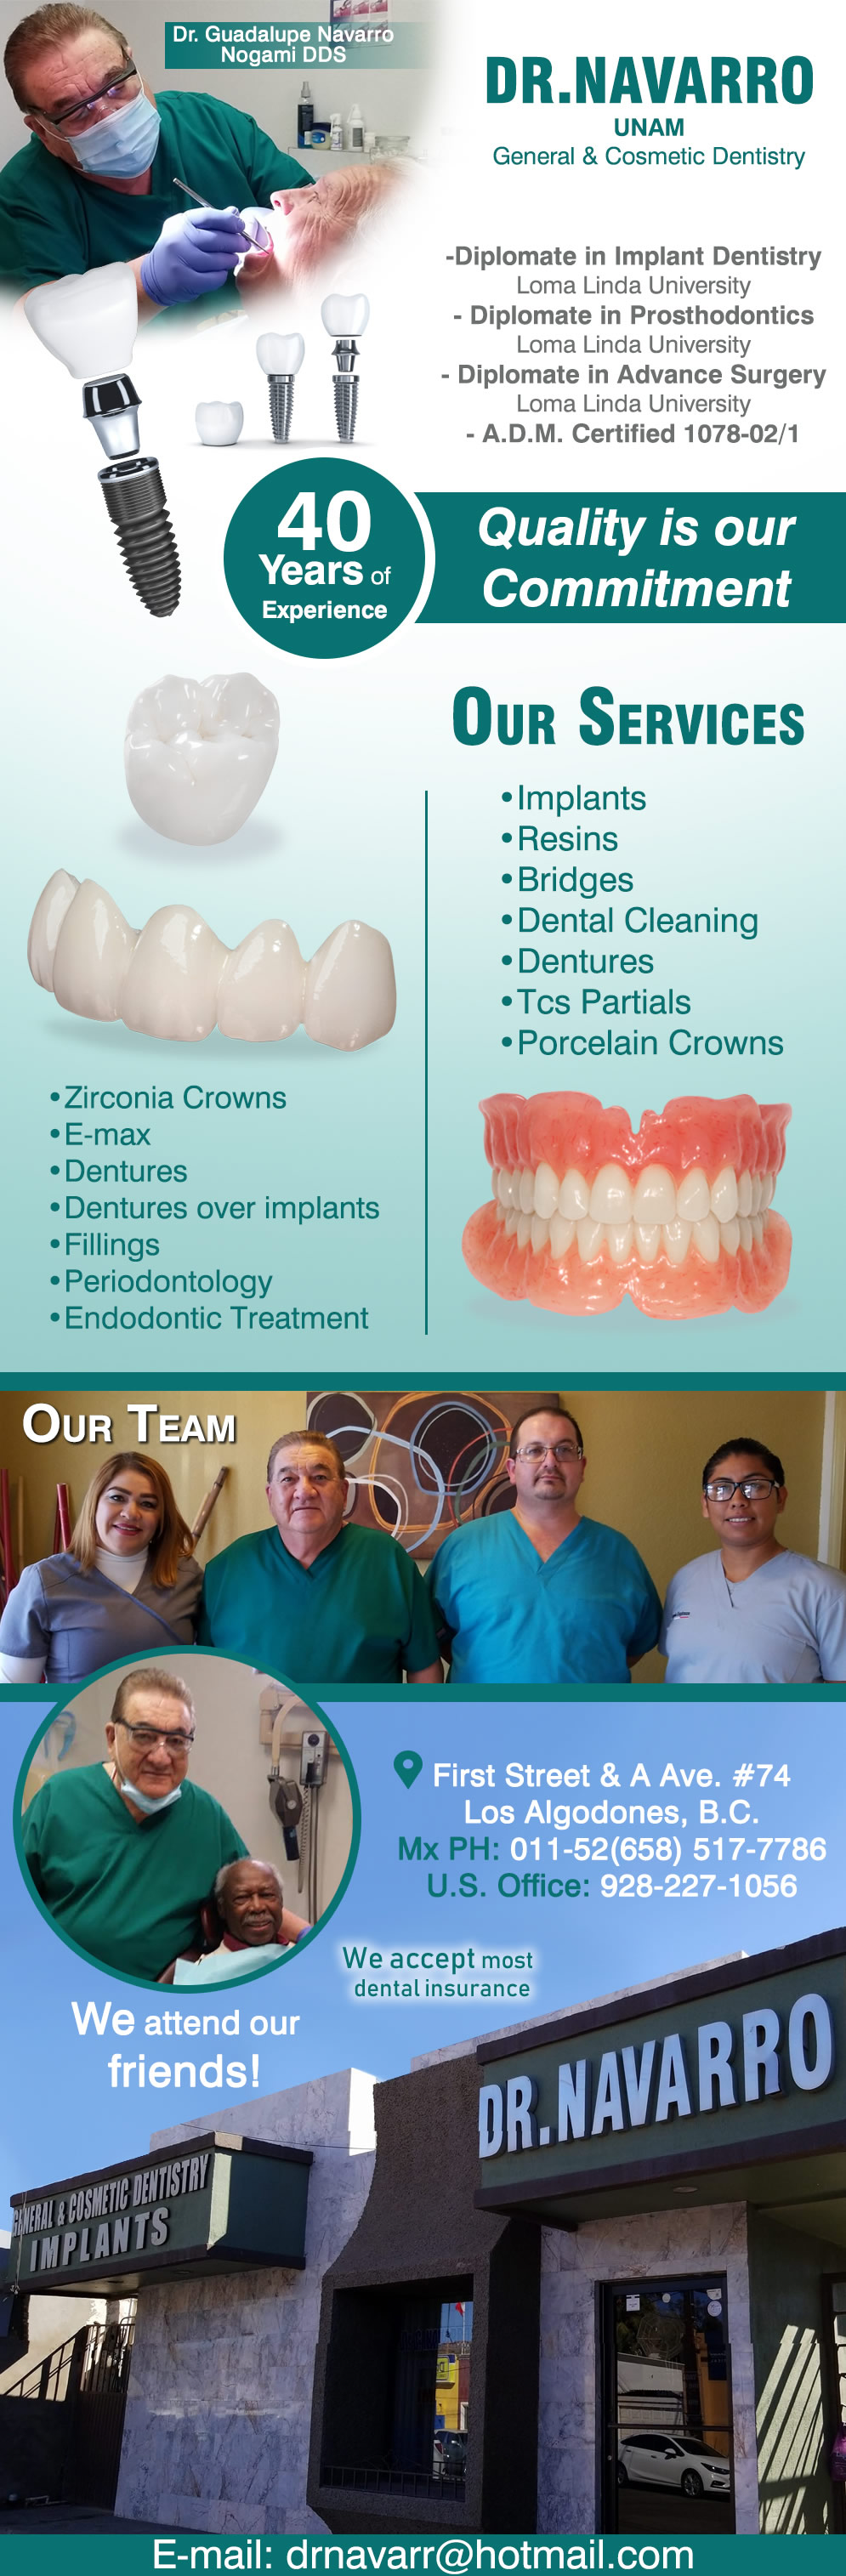 DENTAL OFFICE IMPLANTS  Dr. Guadalupe Navarro Nogami DDS in Algodones  in Algodones  DENTAL OFFICE IMPLANTS DR. GUADALUPE NAVARRO NOGAMI. Our Services:  *Implants